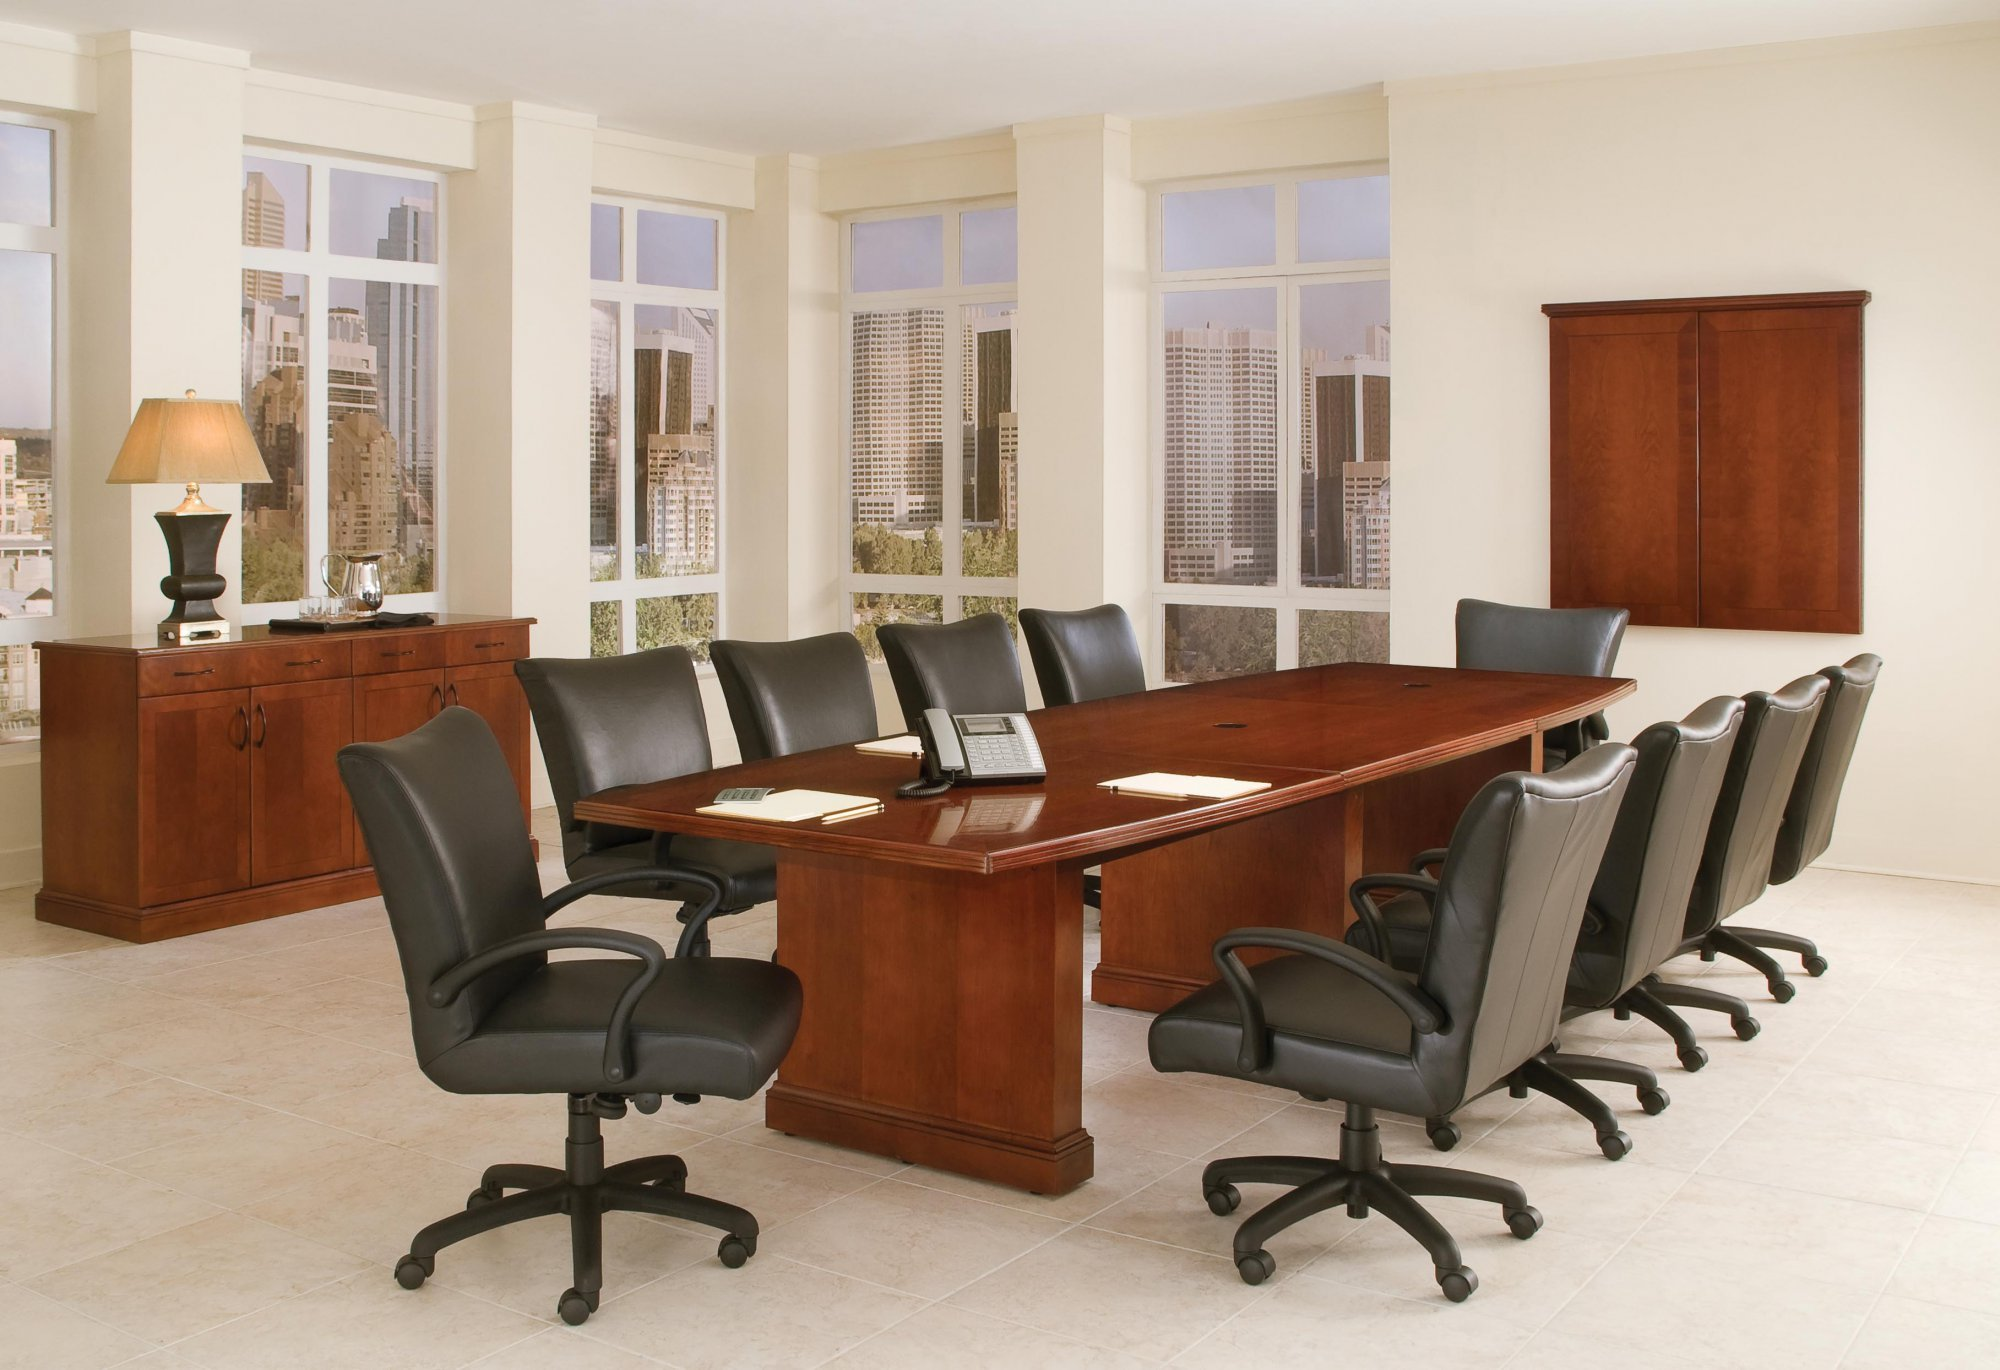 Picture of: Dmi 10 Boat Shaped Conference Table Superior Office Services